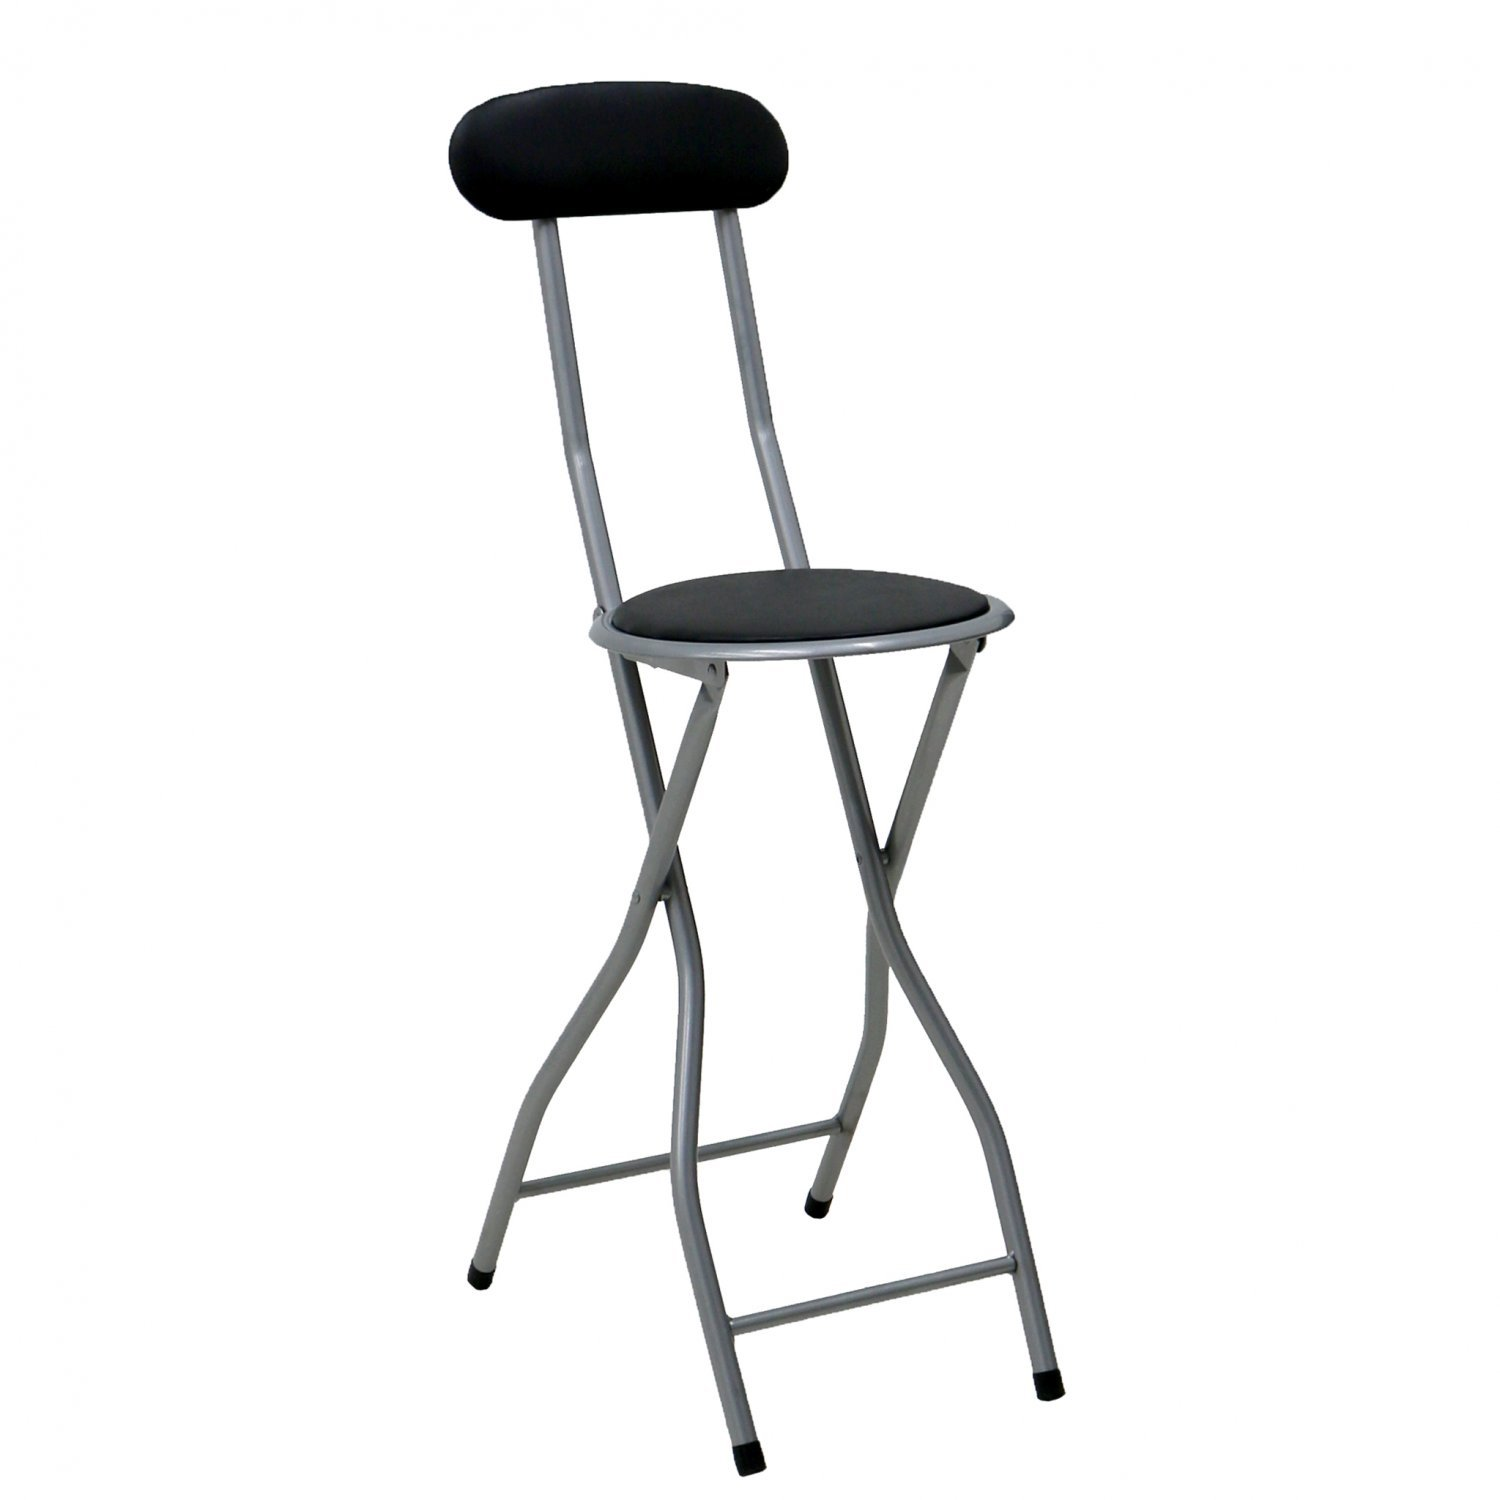 padded high chair back vinyl black folding breakfast kitchen bar stool seat shopping with oypla